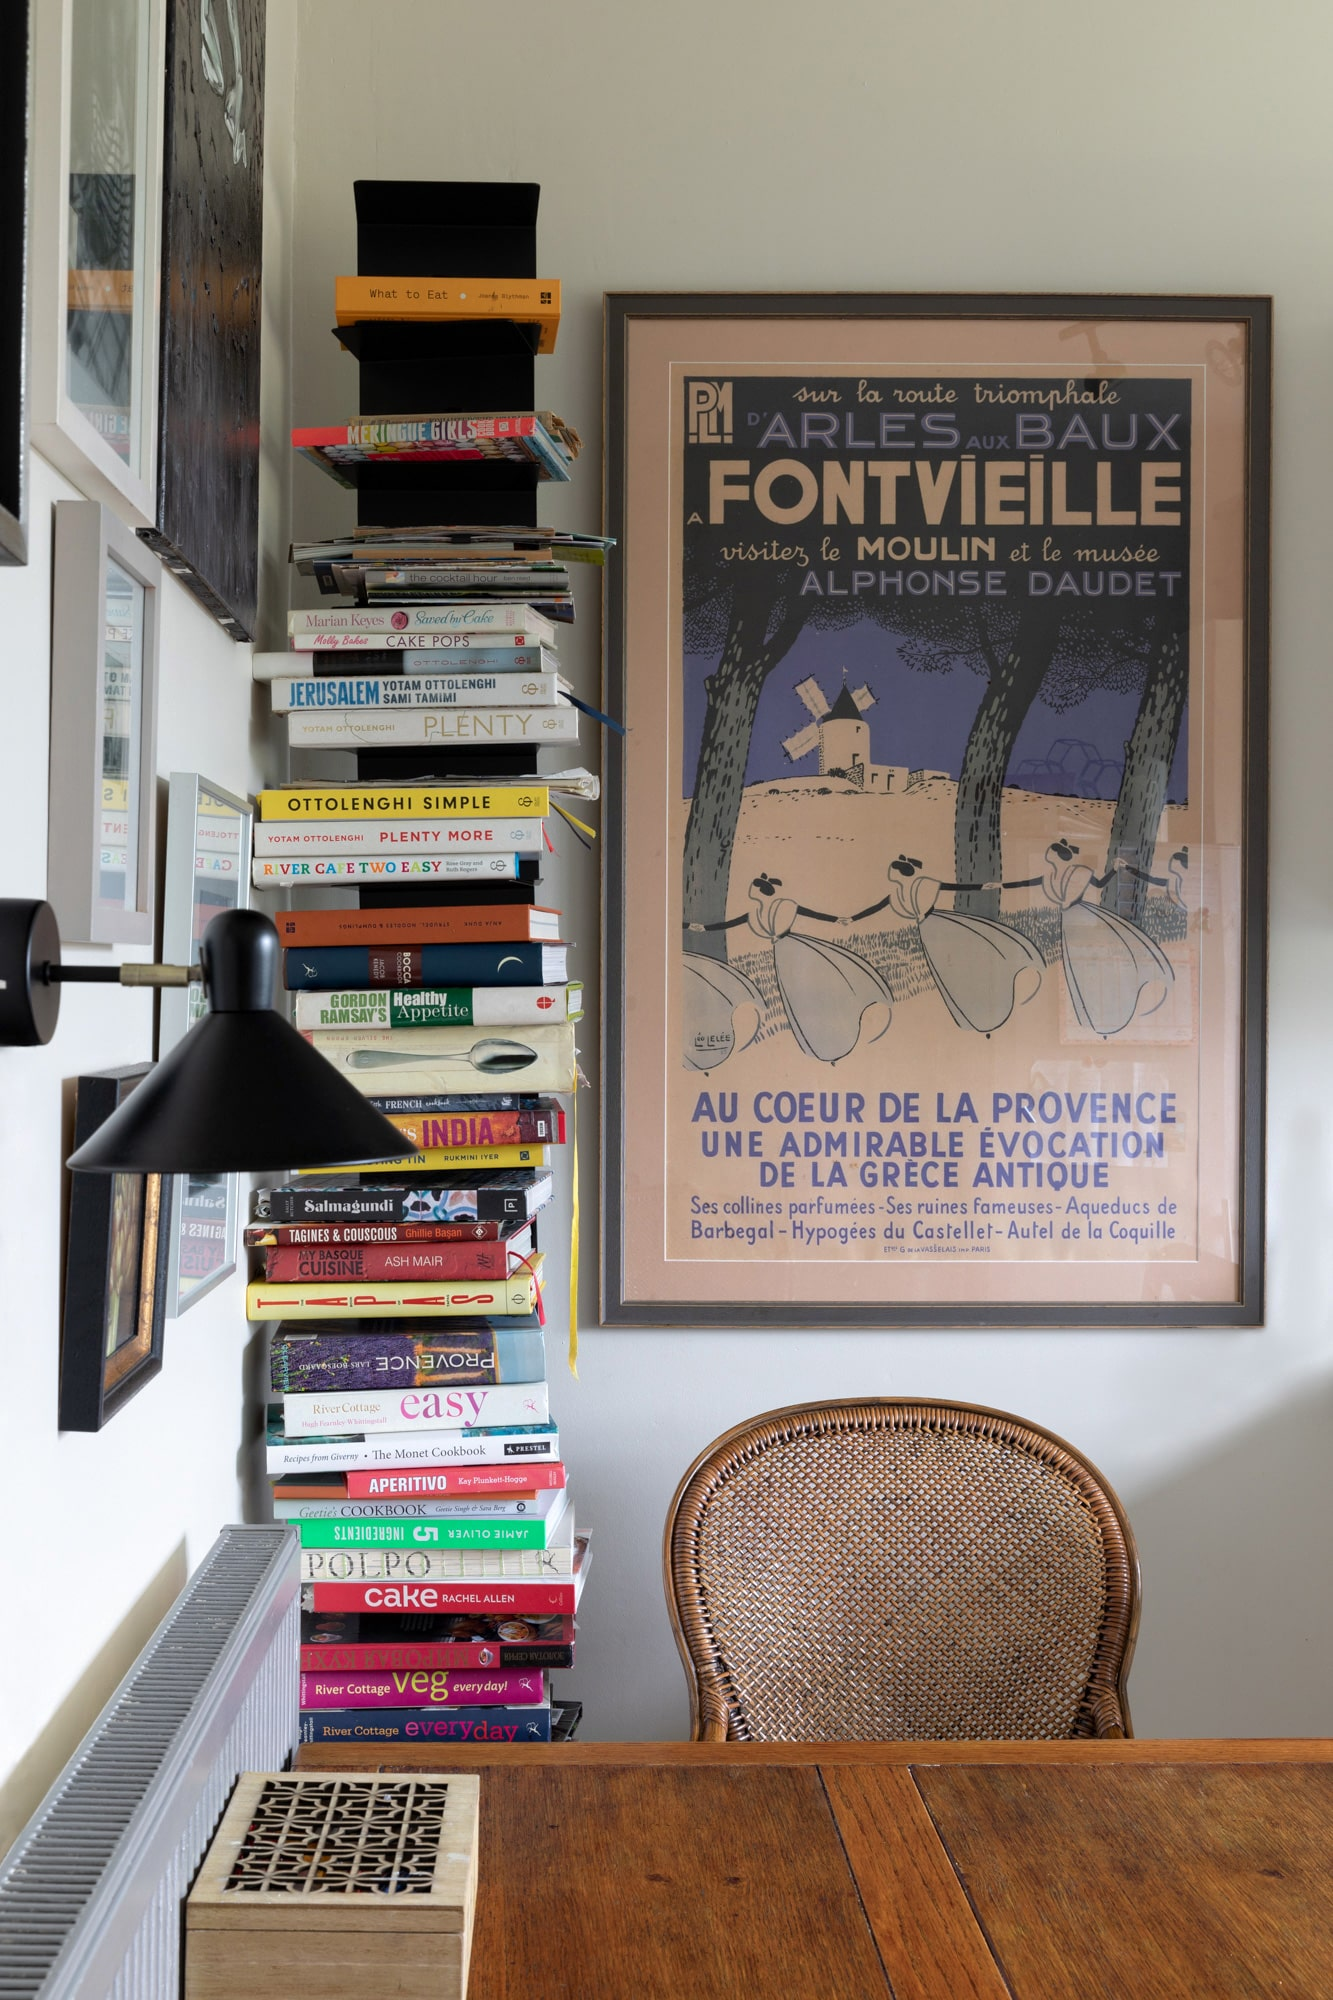 interior photo of a kitchen: pile of books near wooden table with a poster on the wall